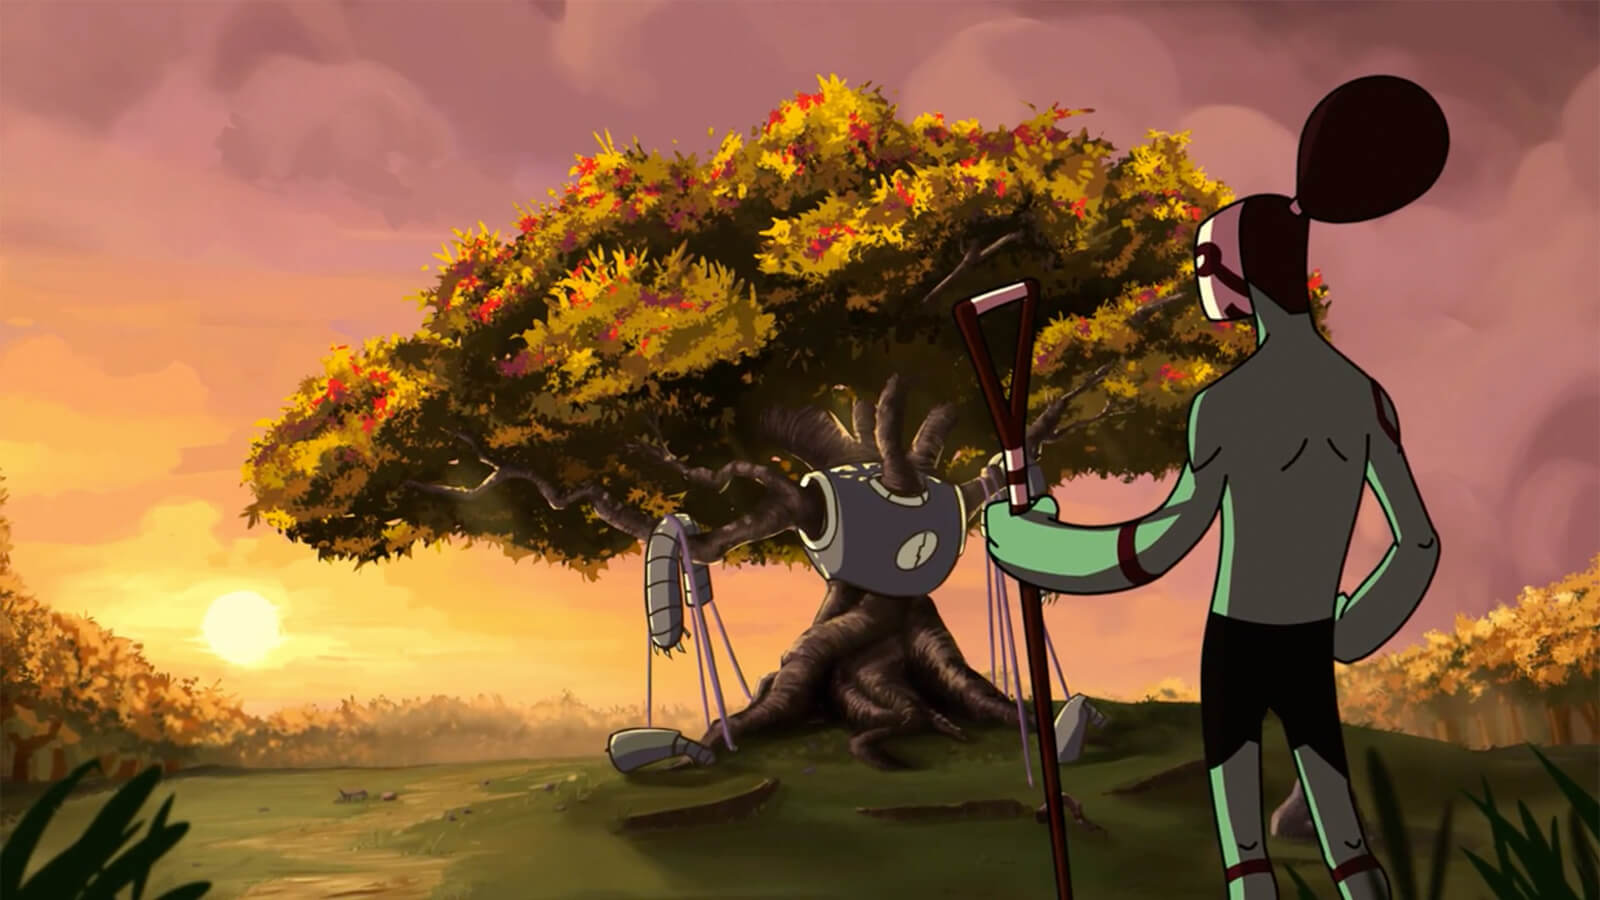 Against a setting sun, a greenish humanoid stares at an tree which has grown through the broken remnants of a large robot.